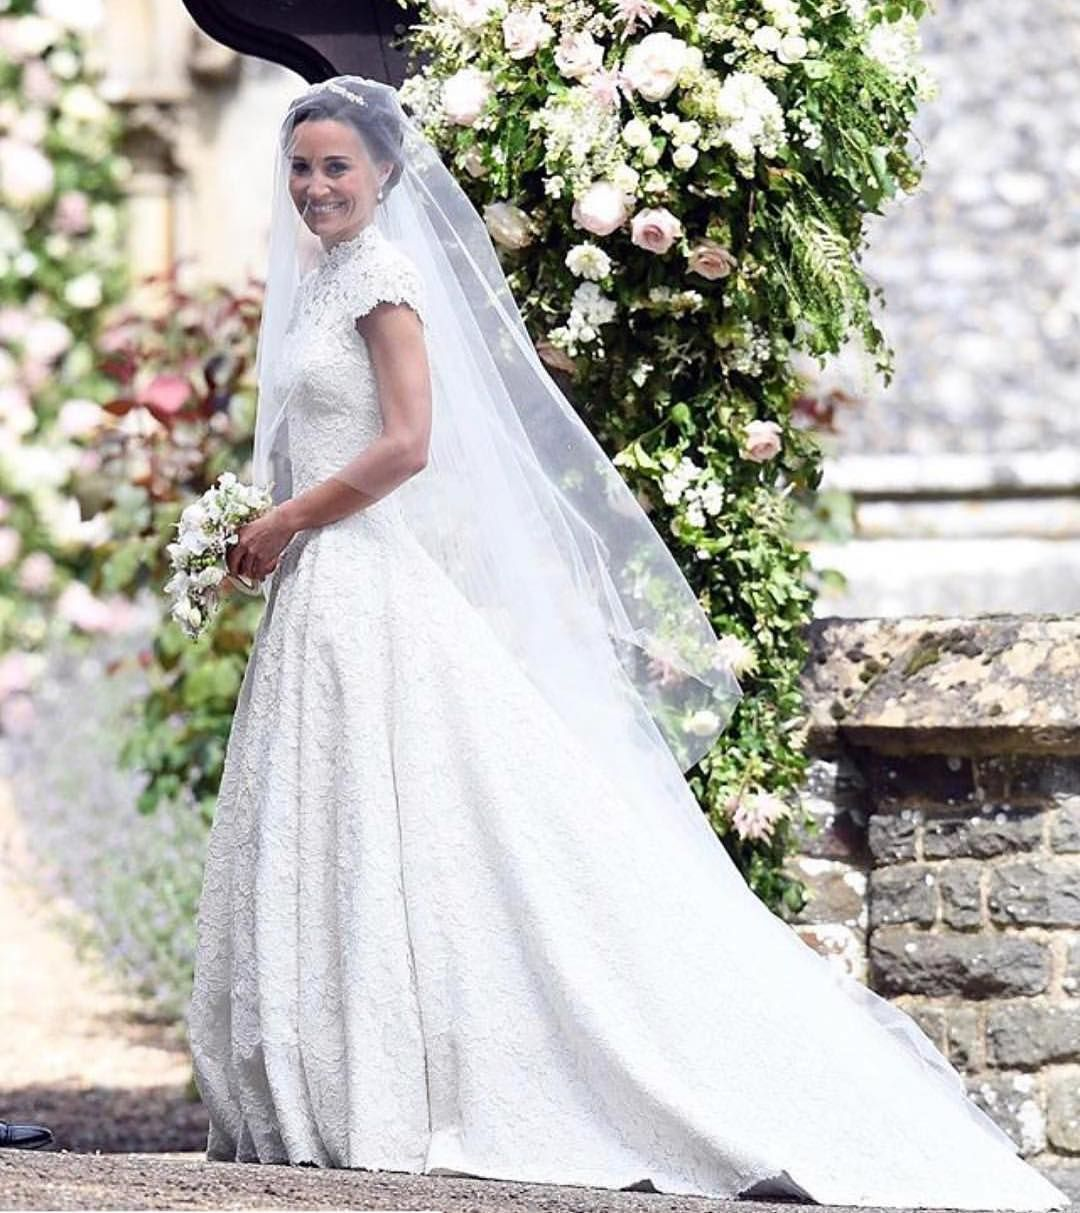 Sarah burton kate middleton wedding dress  Wedding Ideas weddingideas på Instagram ucCompletely covered in